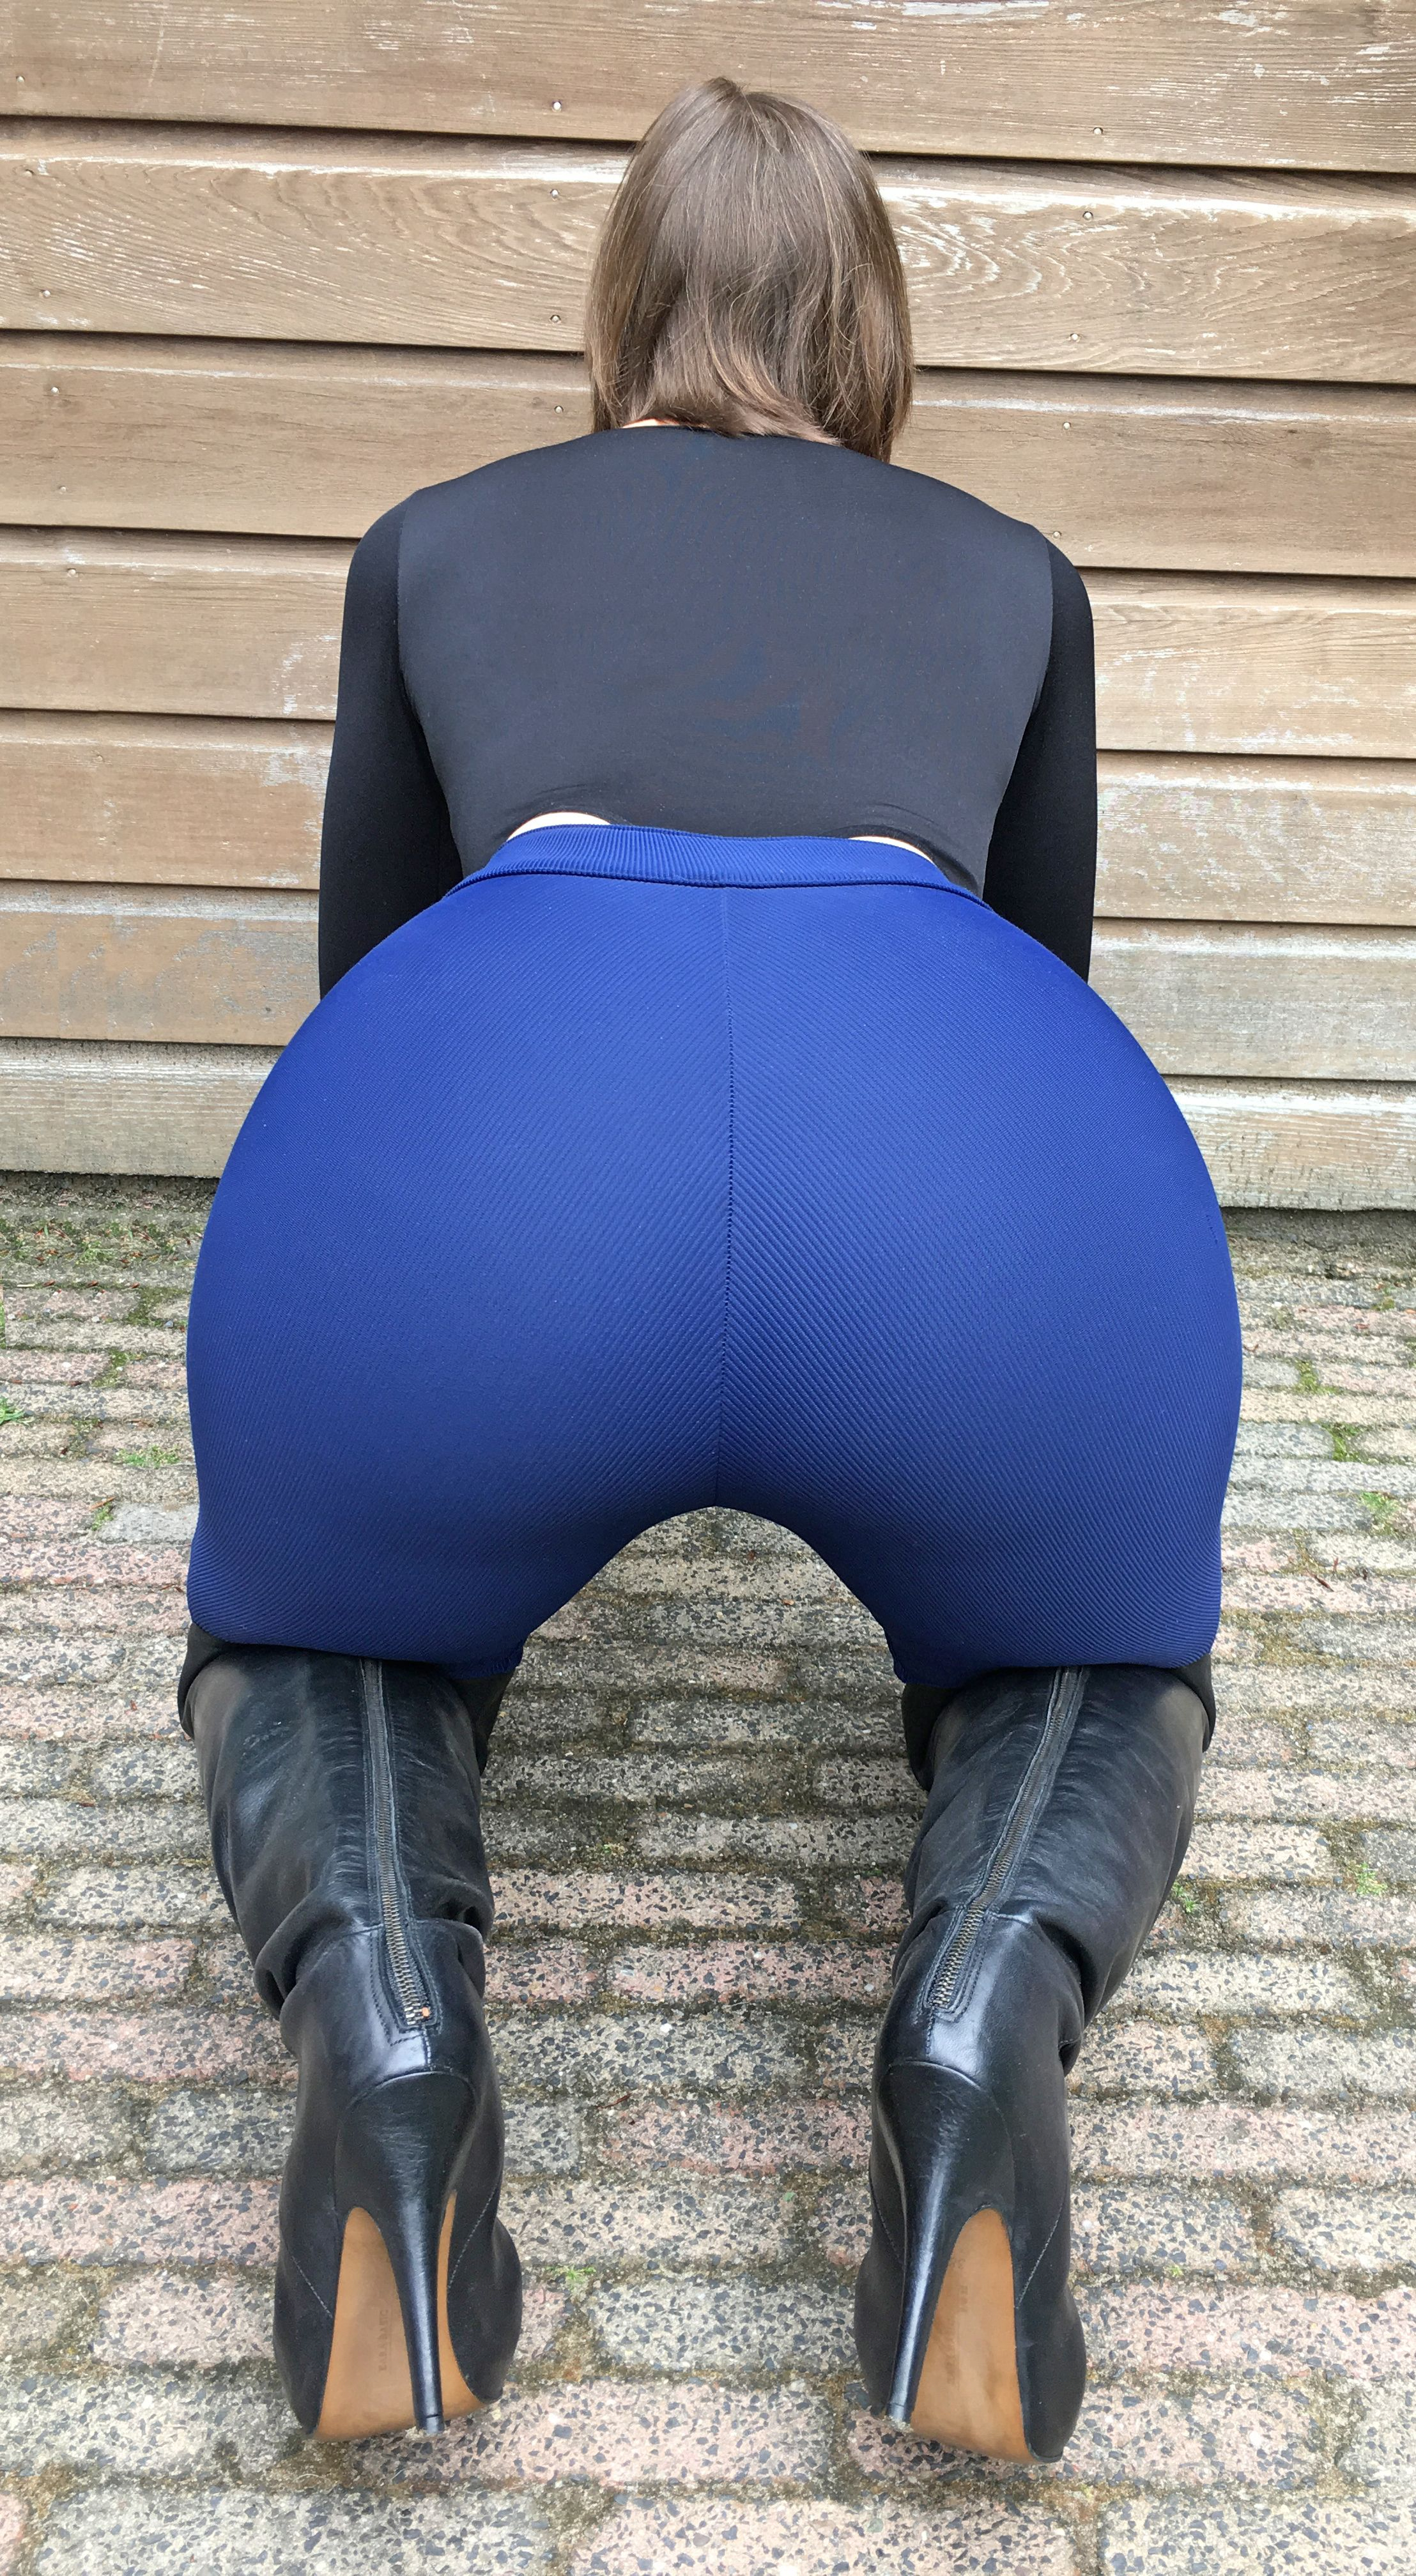 Stephanie Wolf Wearing My Blue Riding Pants With A Butt Plug Underneath